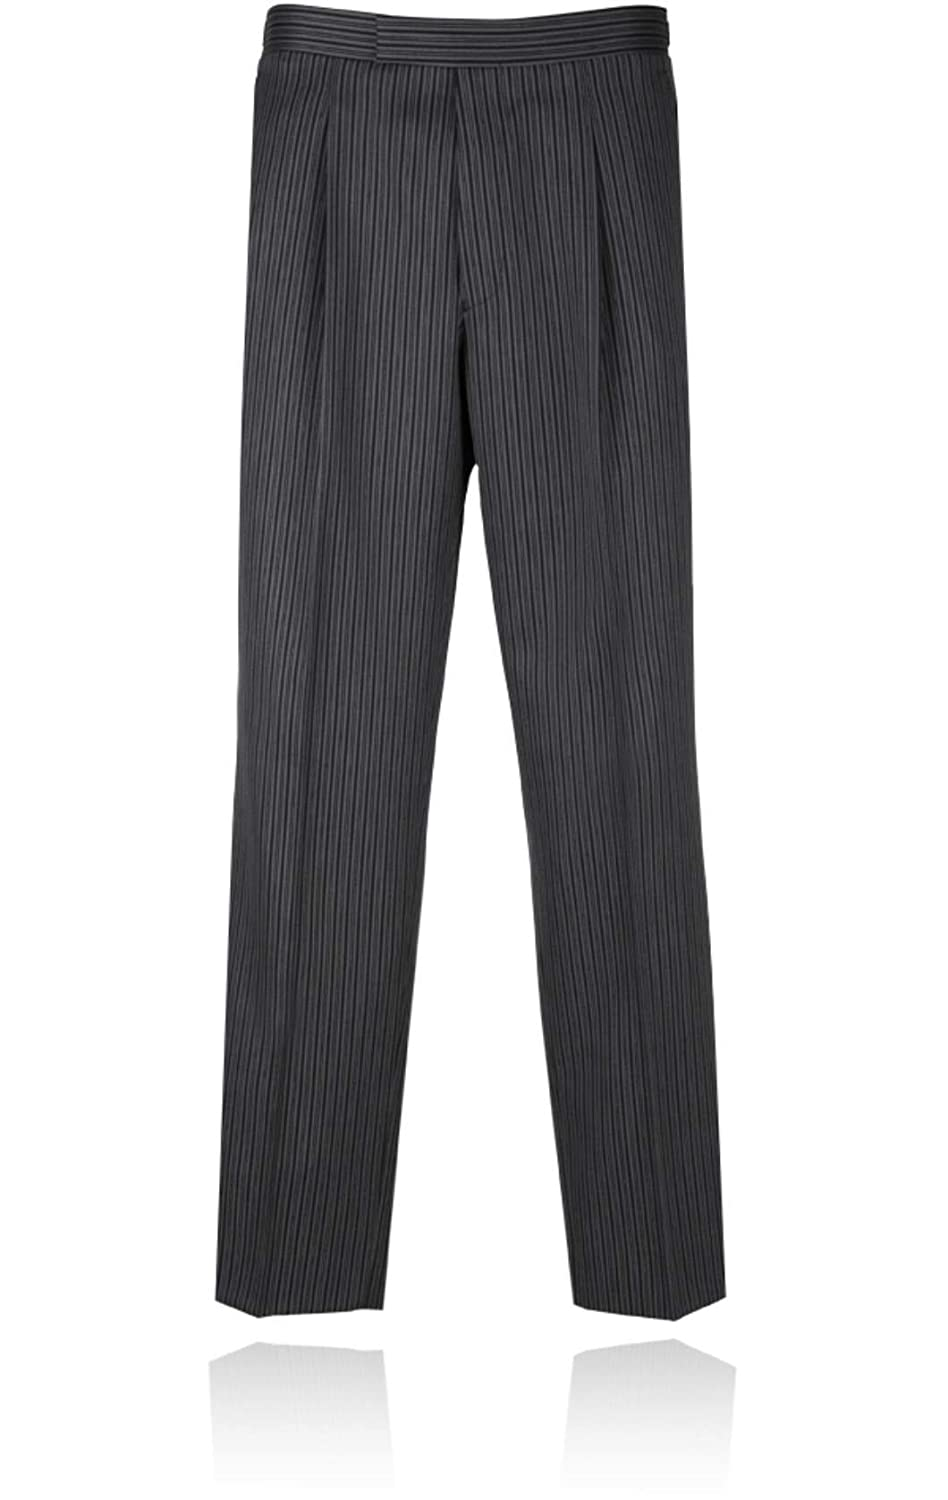 1920s Men's Pants History: Oxford Bags, Plus Four Knickers, Overalls Mens Black & Grey Striped Morning Suit Trousers £50.00 AT vintagedancer.com